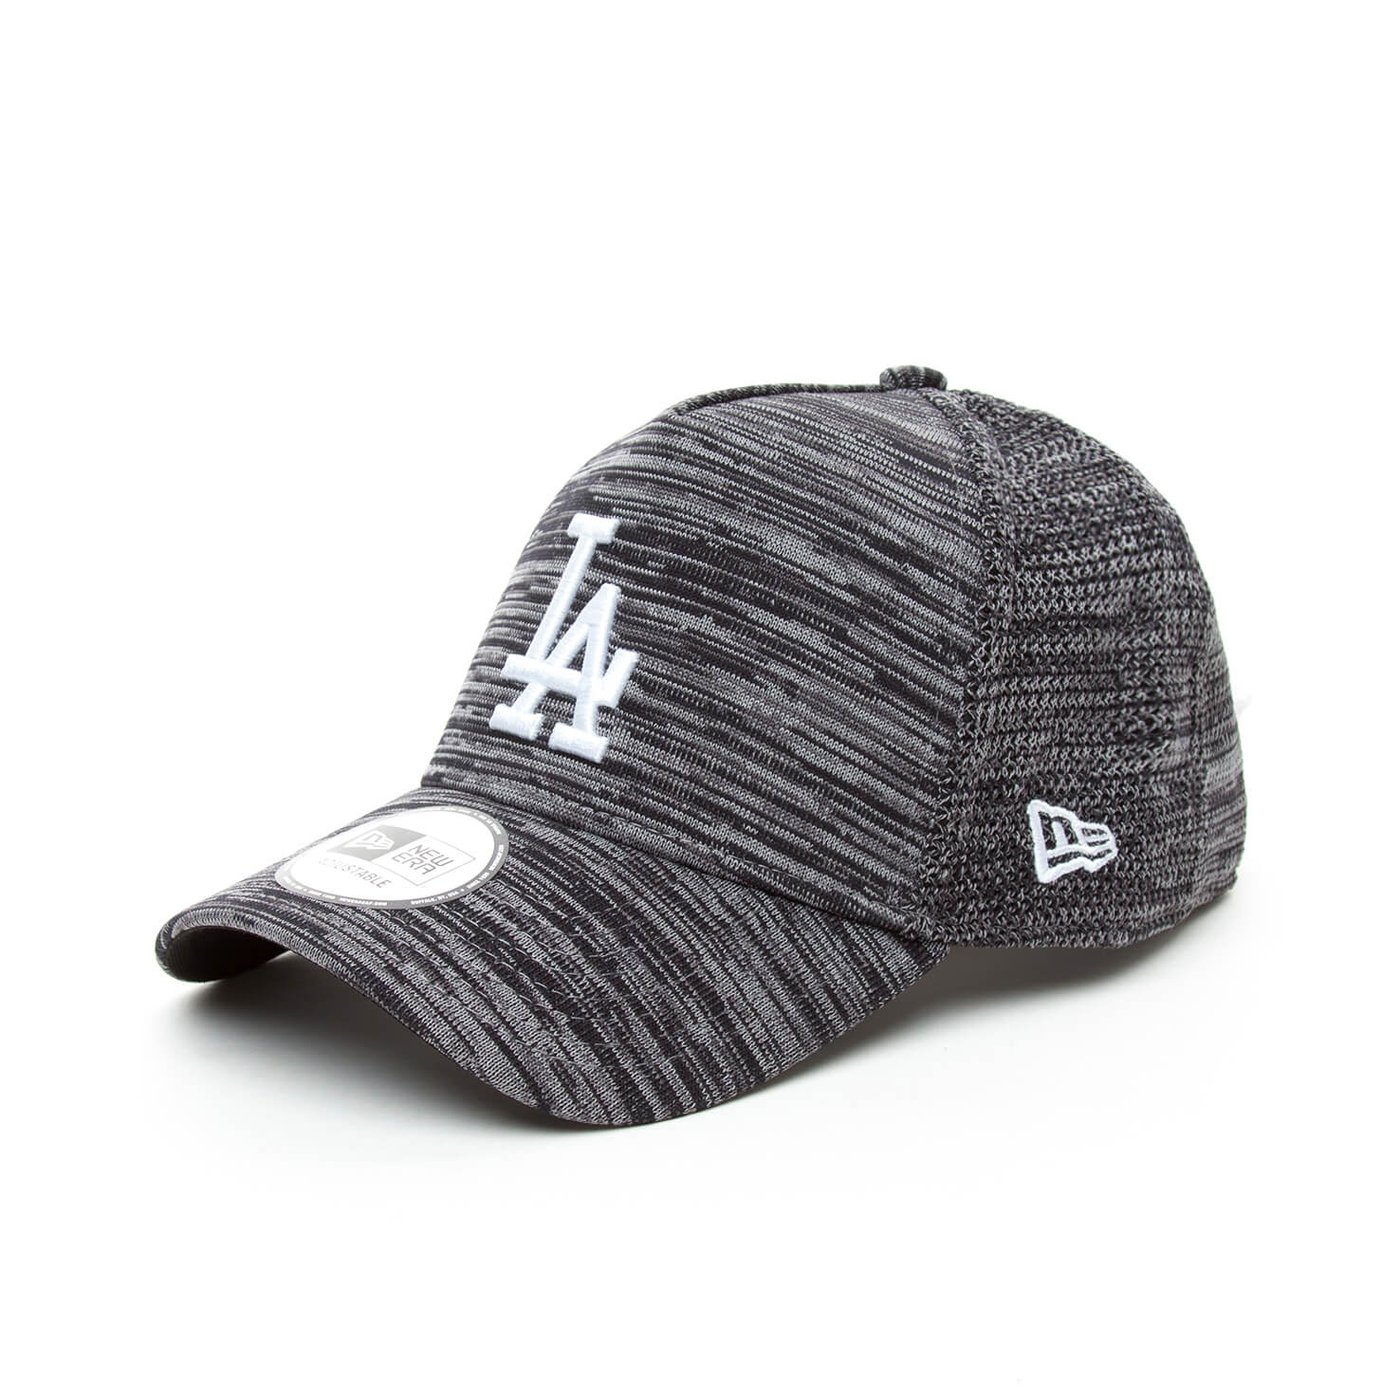 New Era Los Angeles Dodgers Unisex Gri Şapka